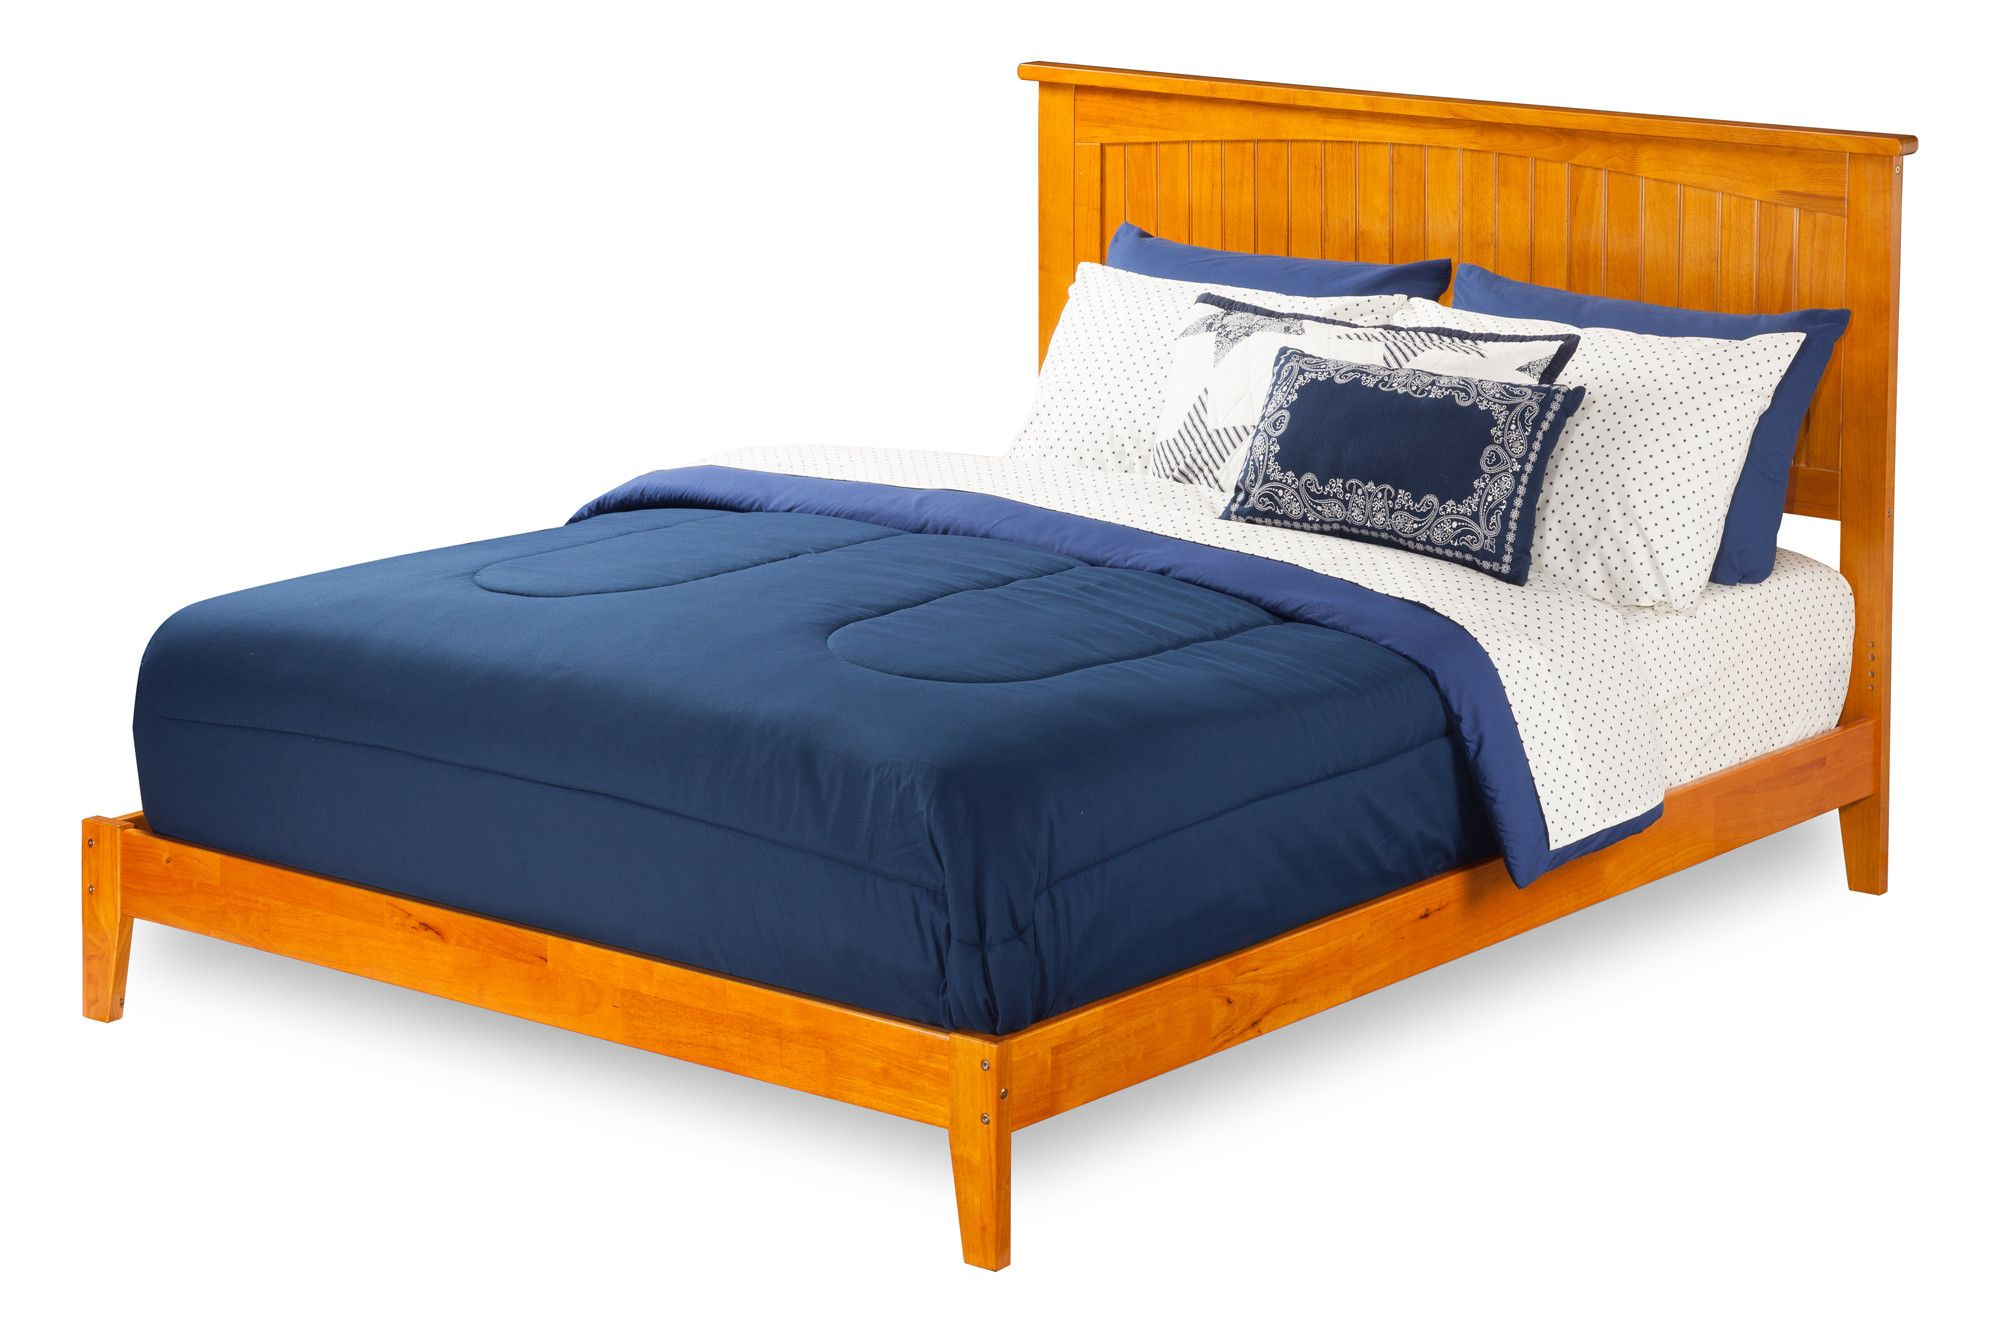 Plainfield Panel Bed Upholstered platform bed, Atlantic